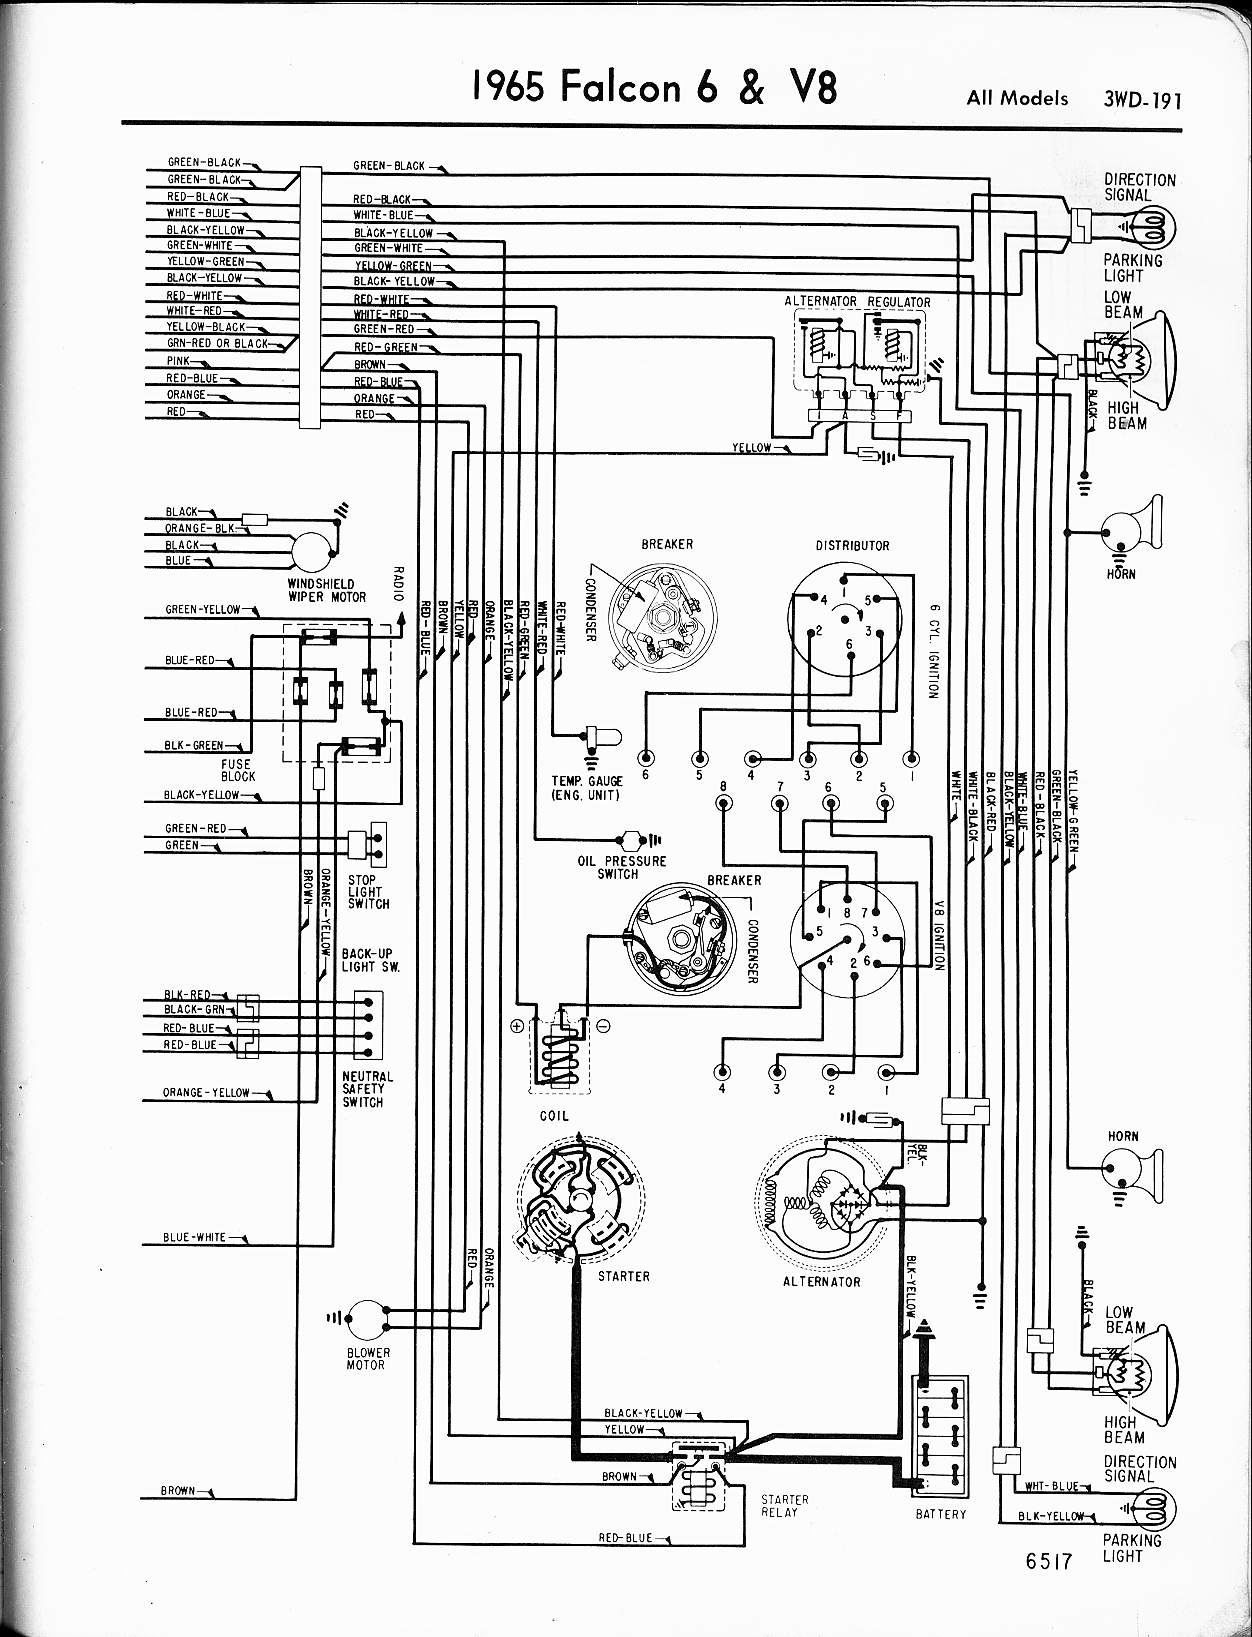 73 F100 Wiring Diagram 73 F100 Parts Wiring Diagram ~ ODICIS